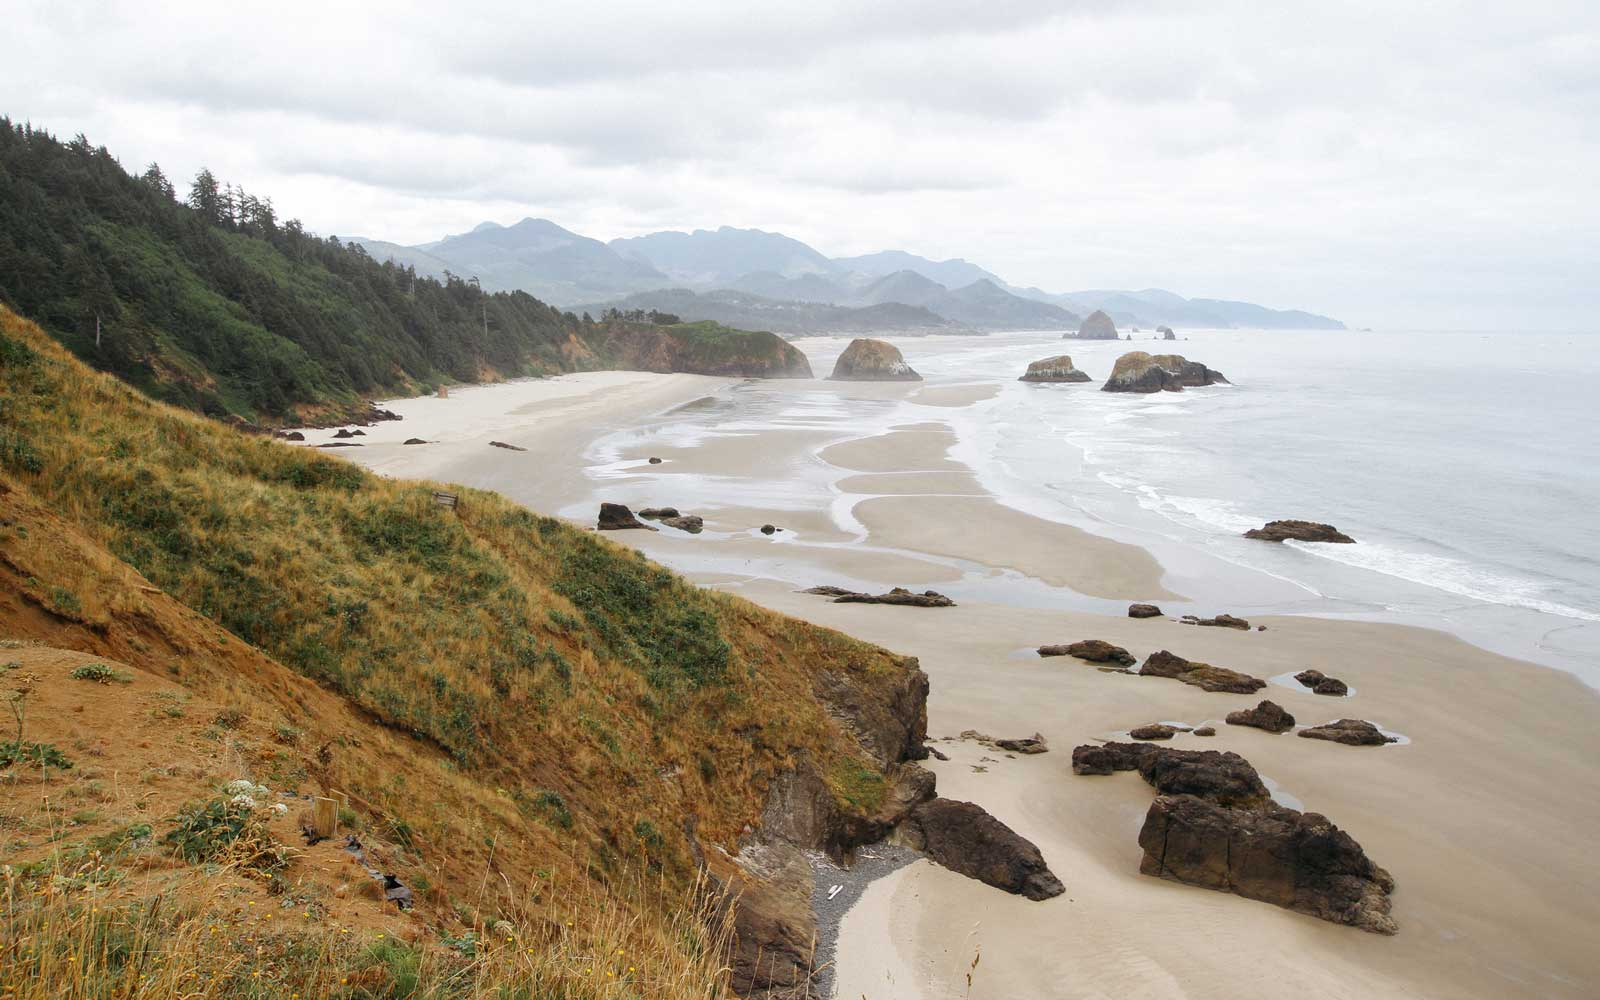 A view of the Oregon coast at Ecola State Park.